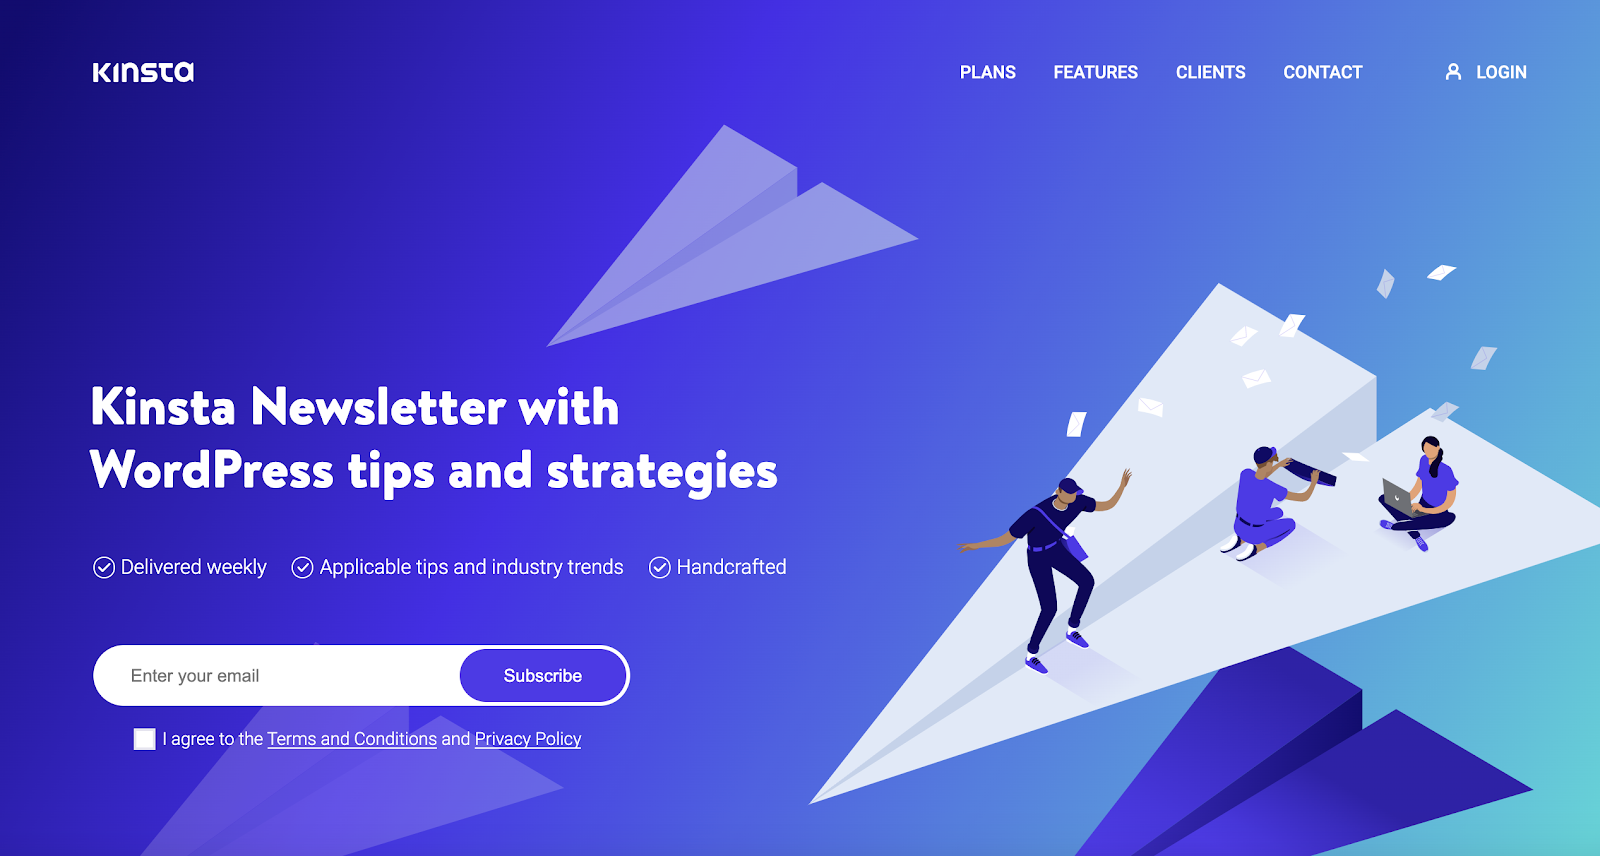 Kinsta's newsletter page with subscription form